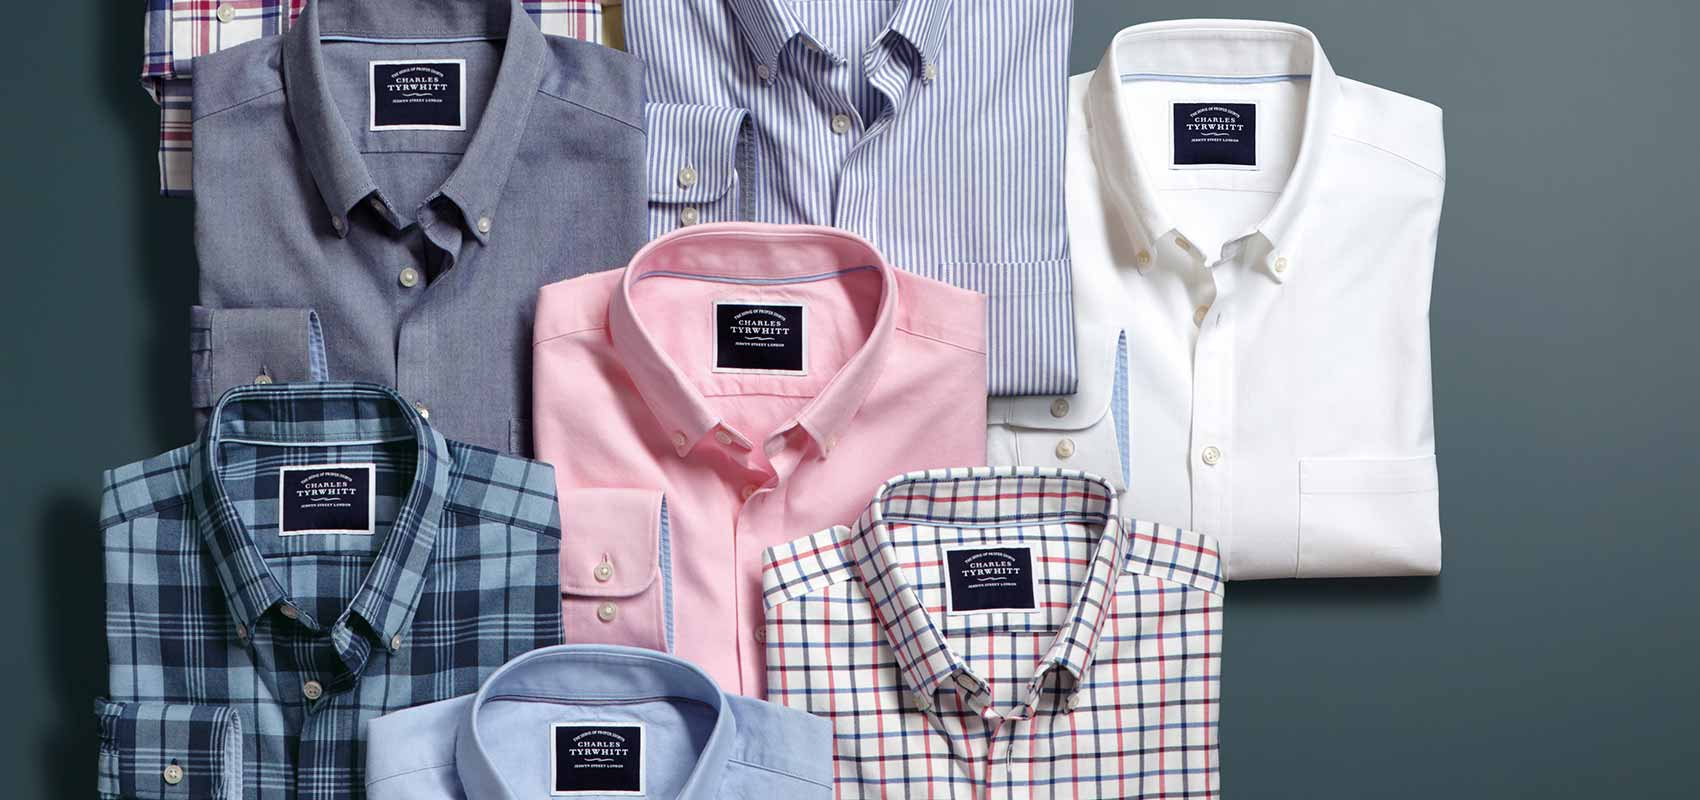 Charles Tyrwhitt  Oxford shirts